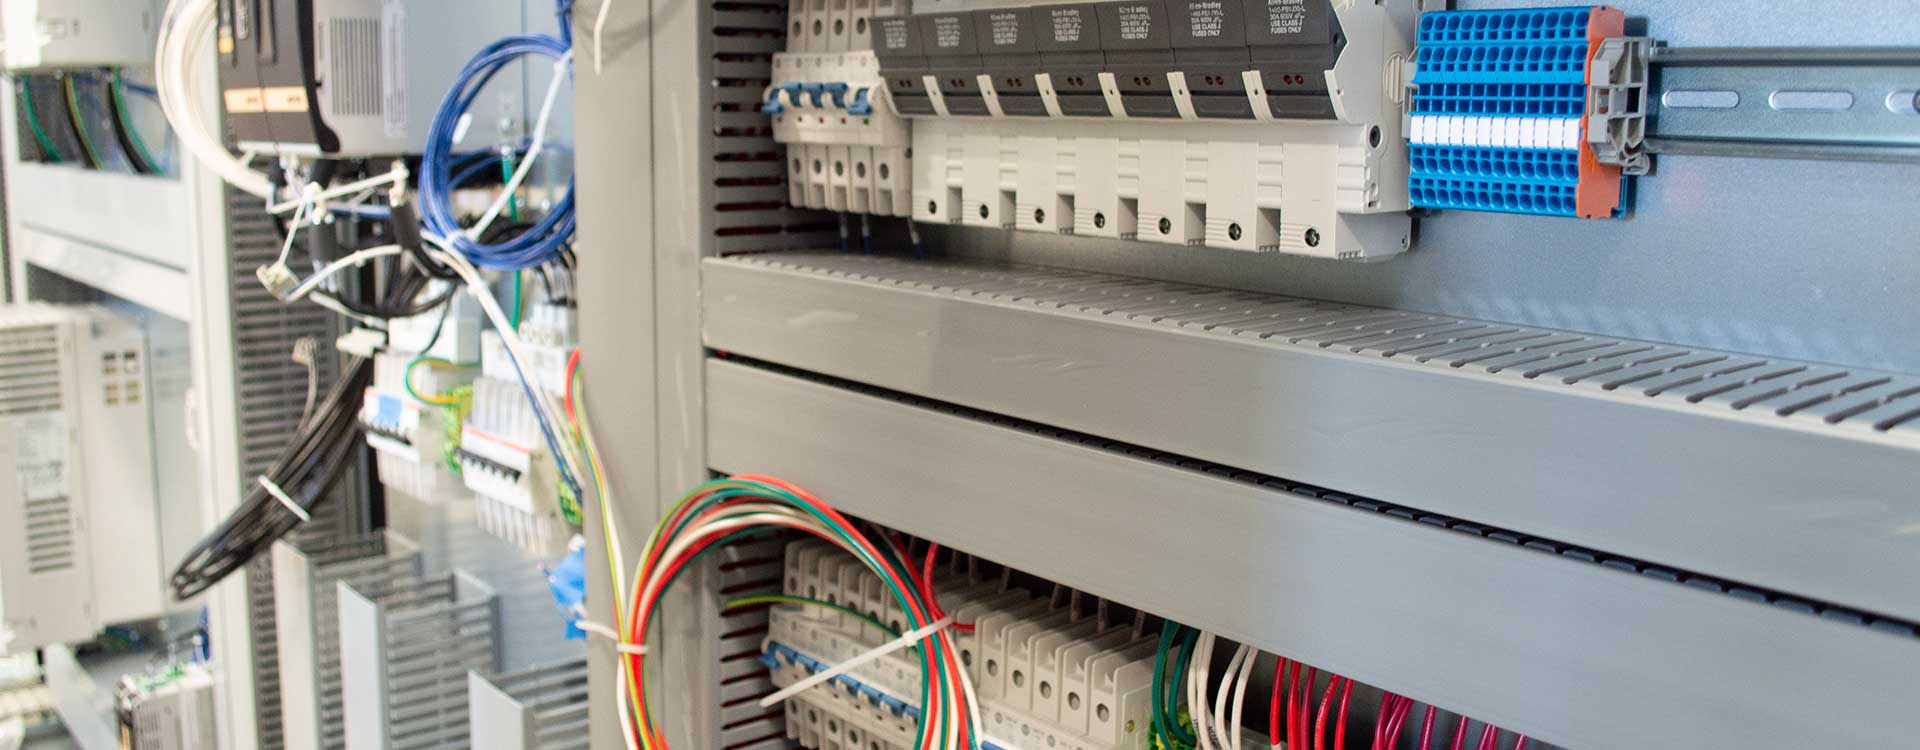 Outsourced industrial control panels to PanelTEK.